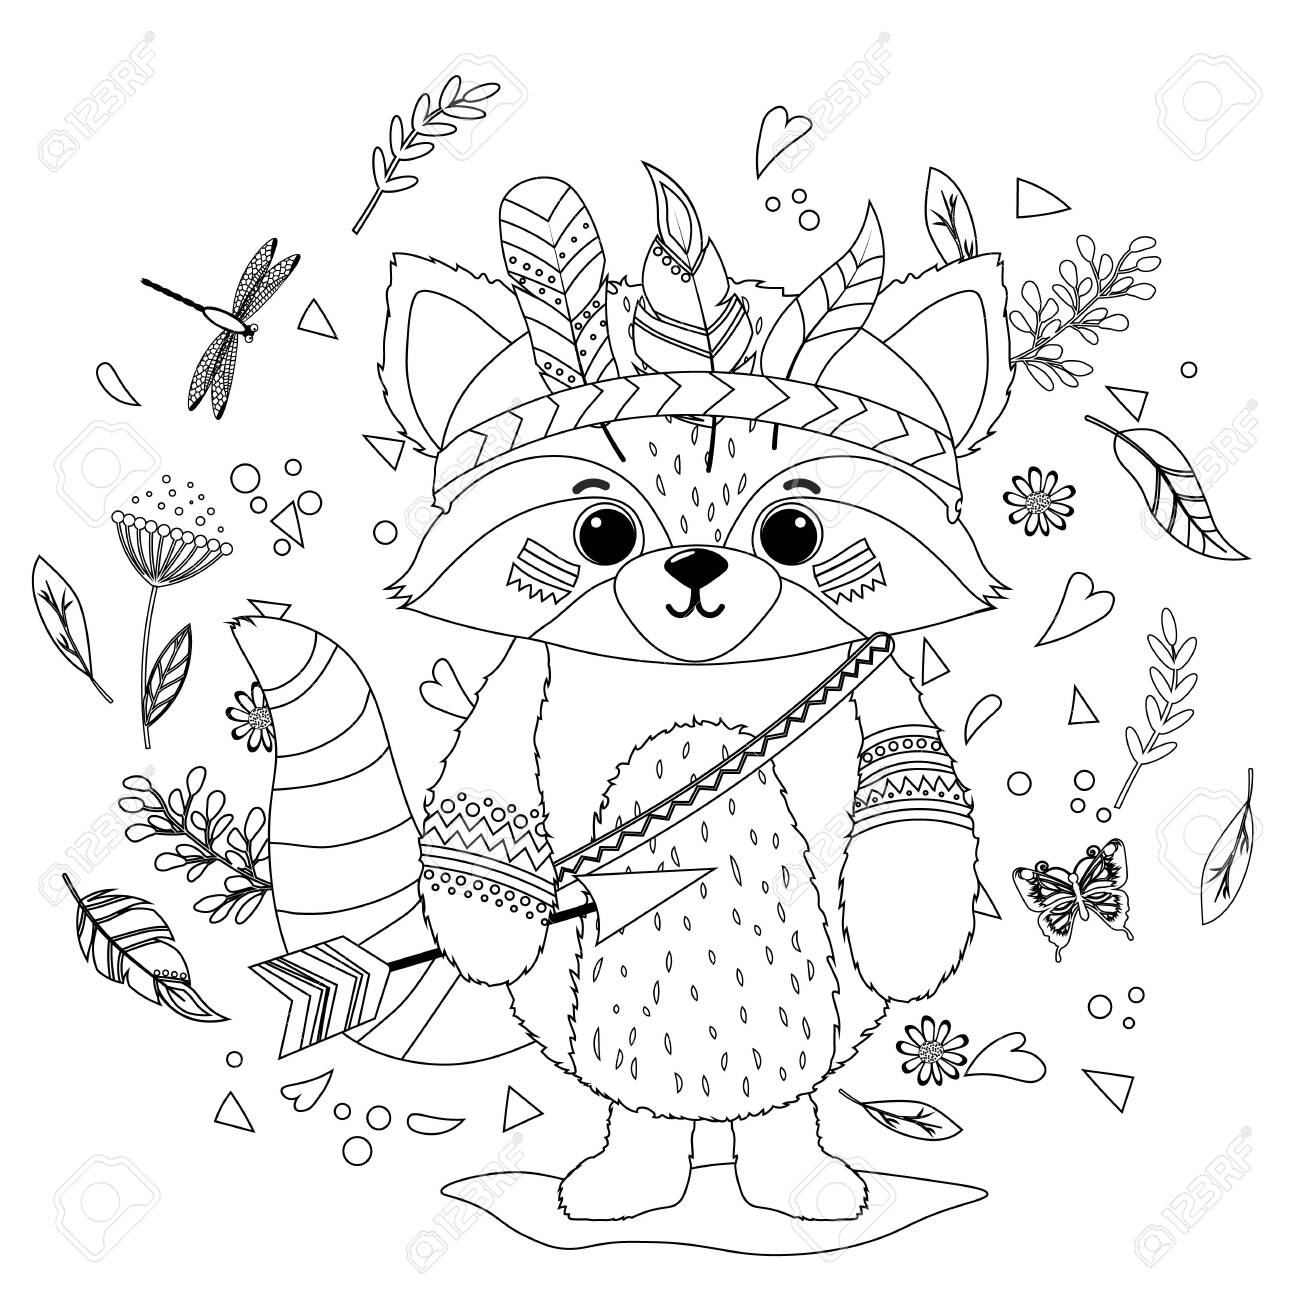 A Raccoon In A Feathered Indian War Hat Coloring Book For Children Royalty Free Cliparts Vectors And Stock Illustration Image 146187769